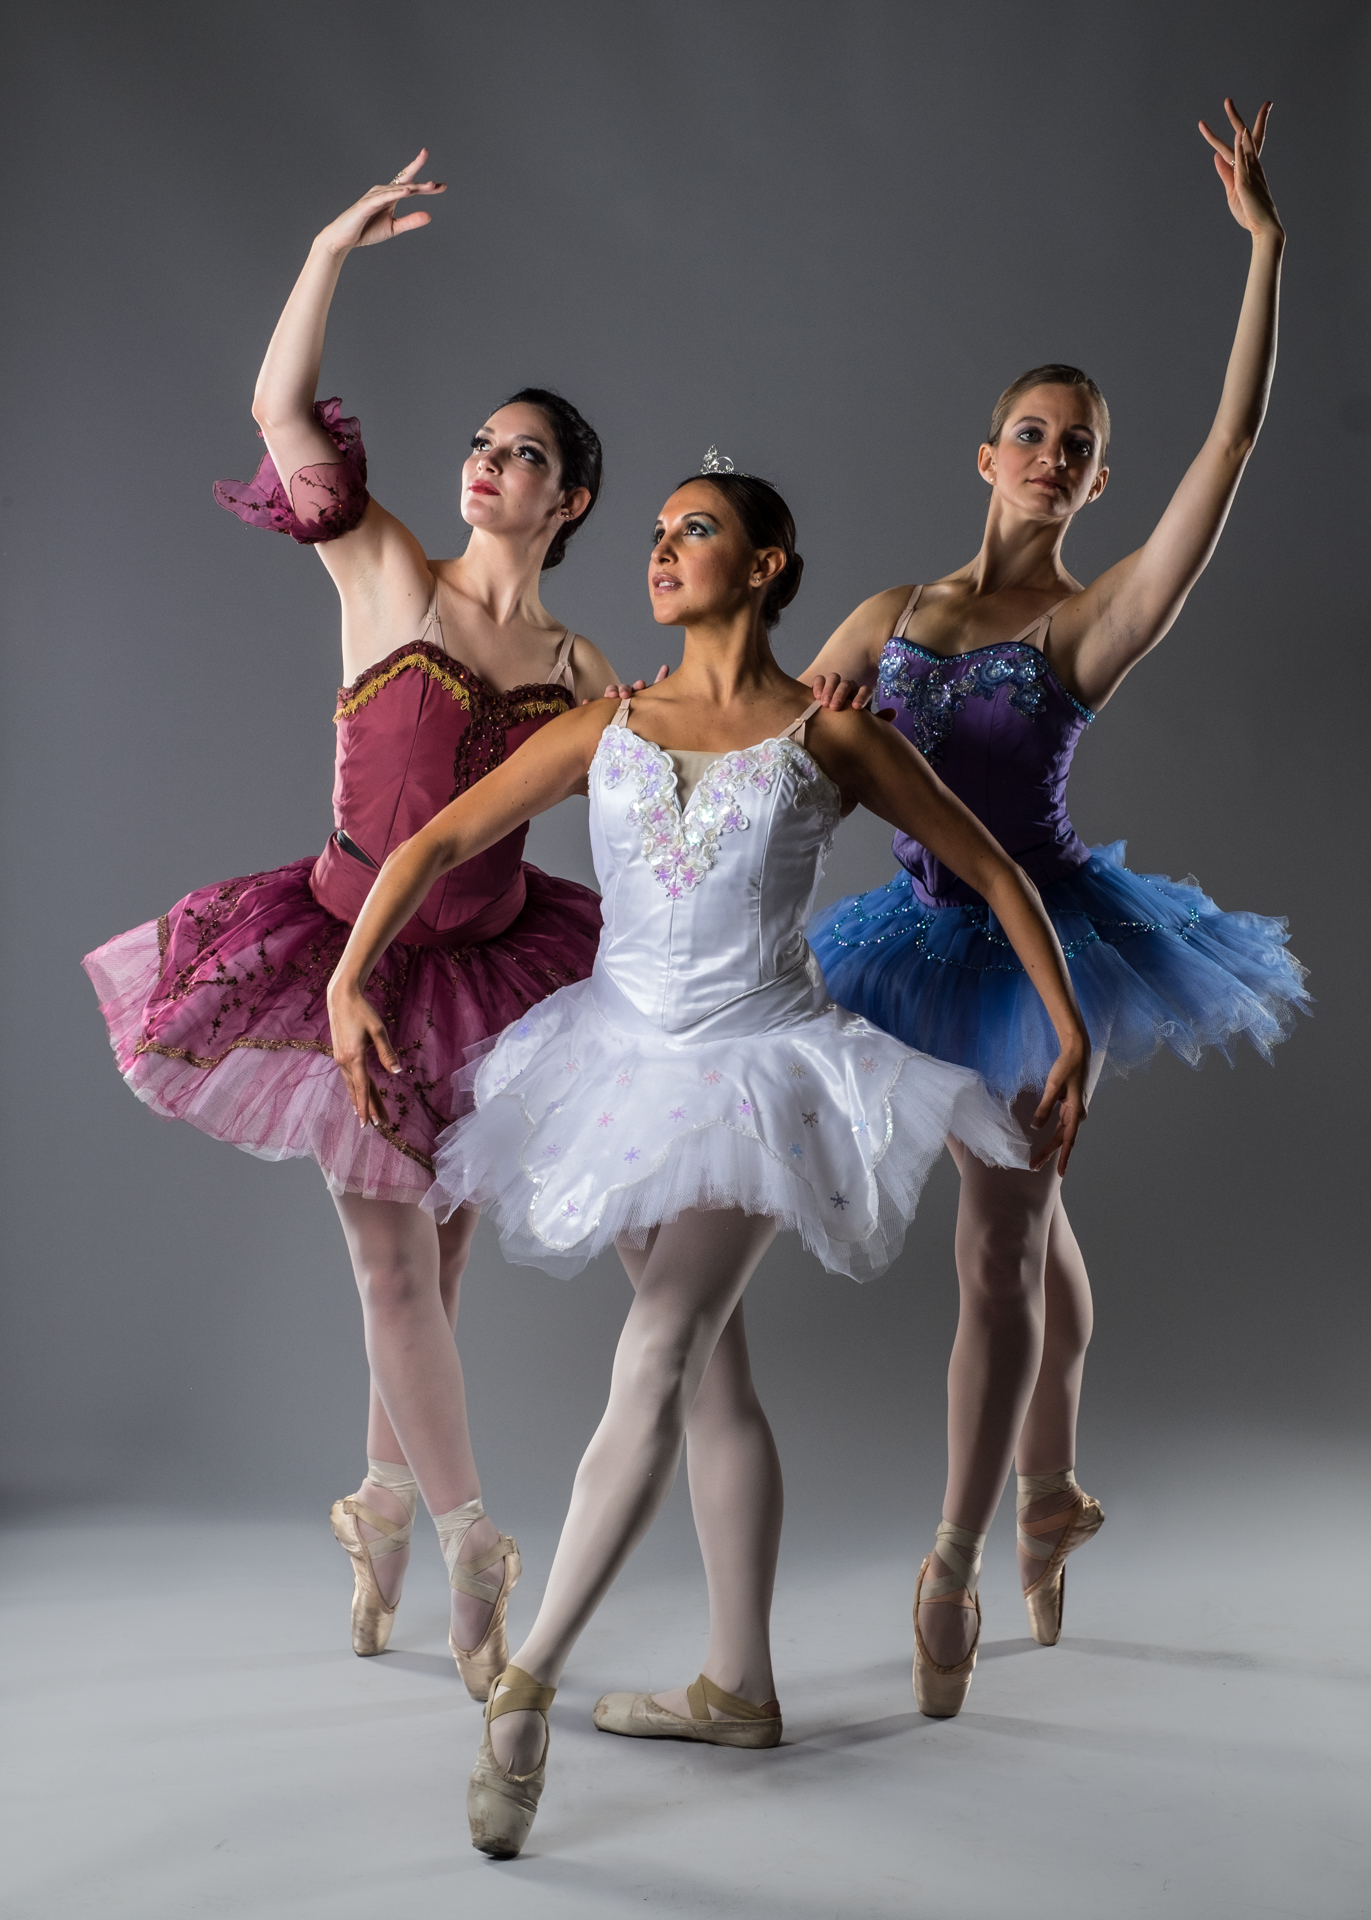 Ballerinas, X-T1 and Phottix Indra lights